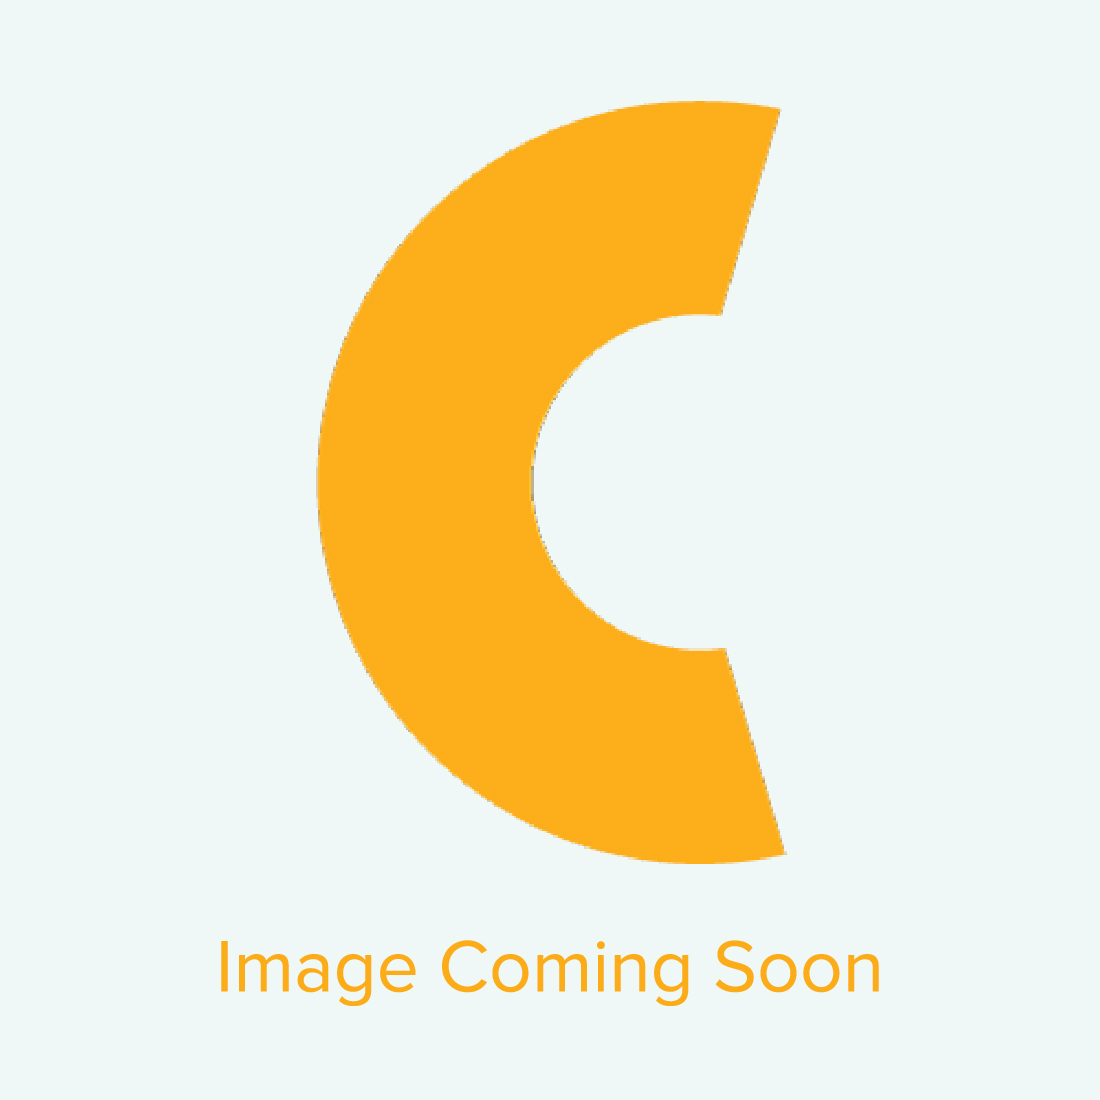 30 oz. Sublimation Stainless Steel Tumbler